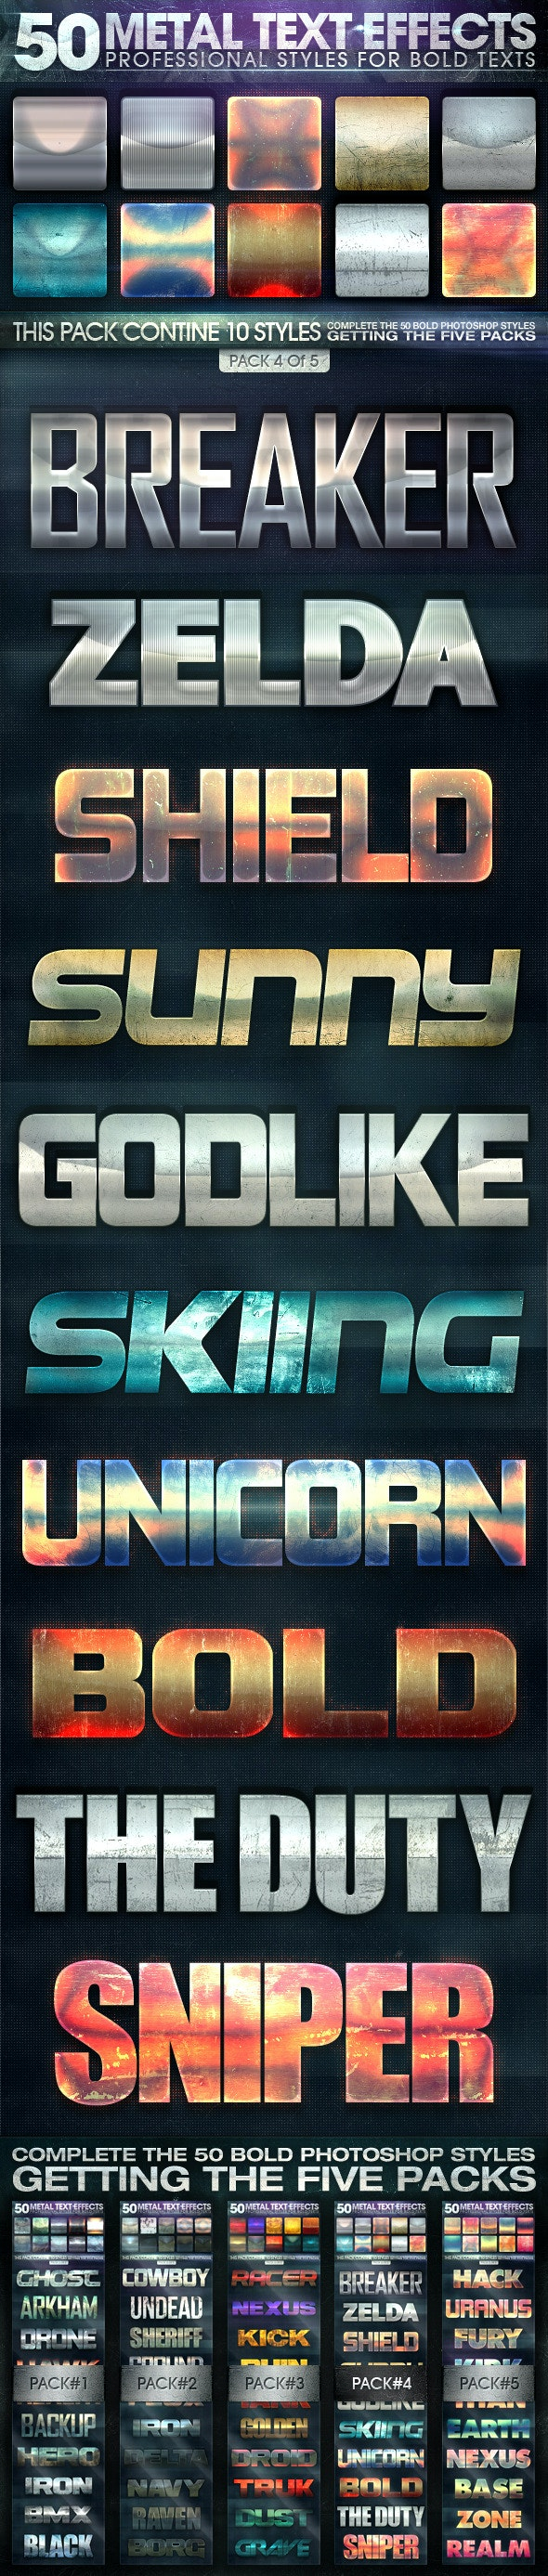 50 Metal Text Effects 4 of 5 - Text Effects Styles